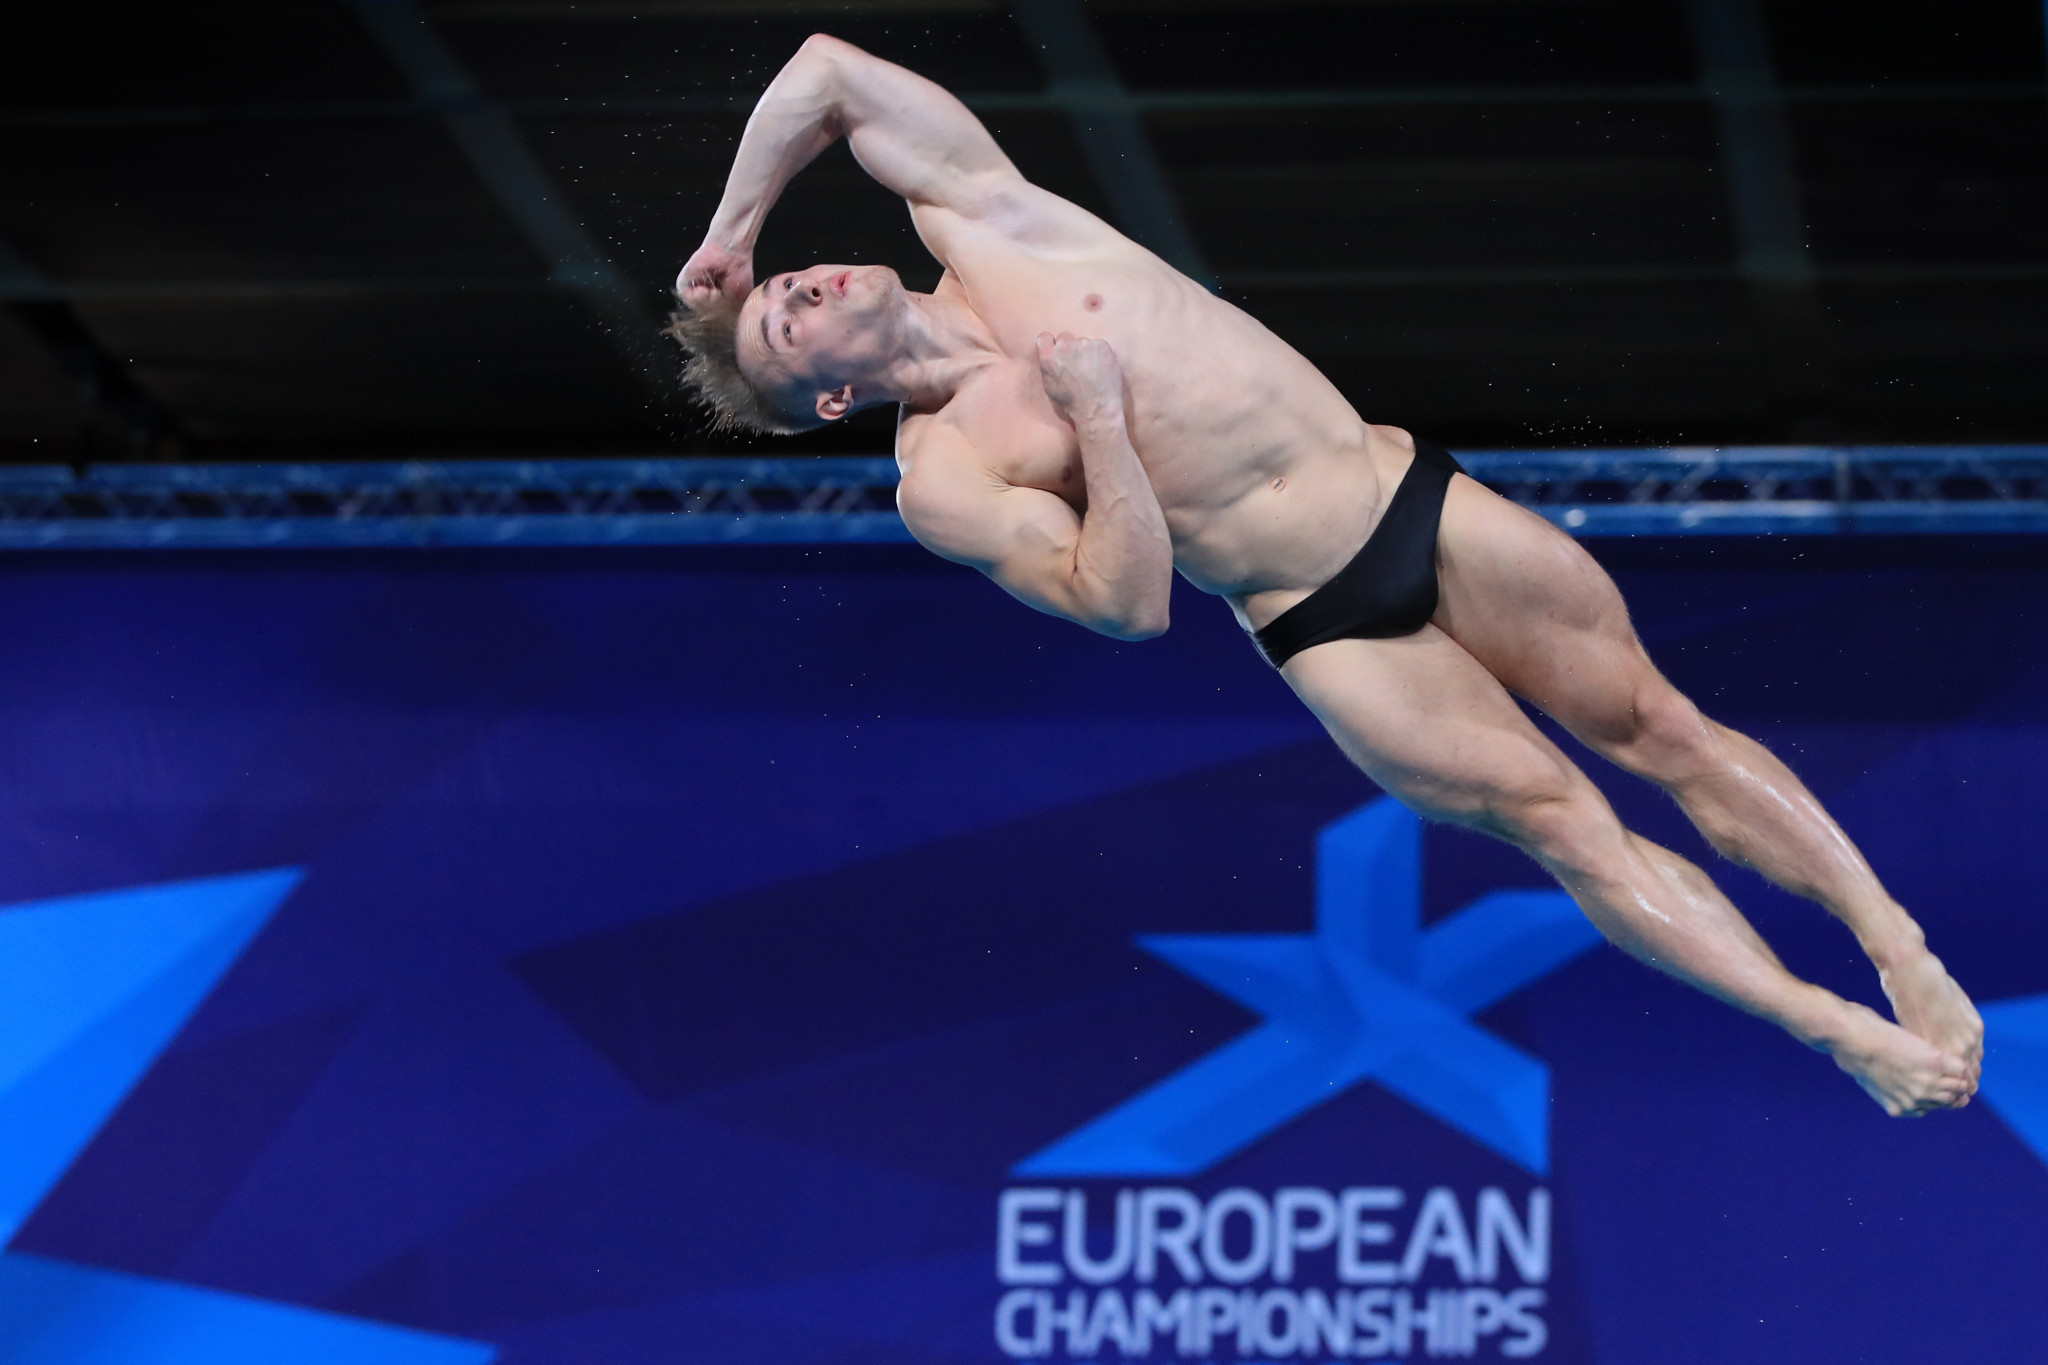 Britain's Jack Laugher is among divers set to compete at this weekend's event in the Japanese city ©Getty Images